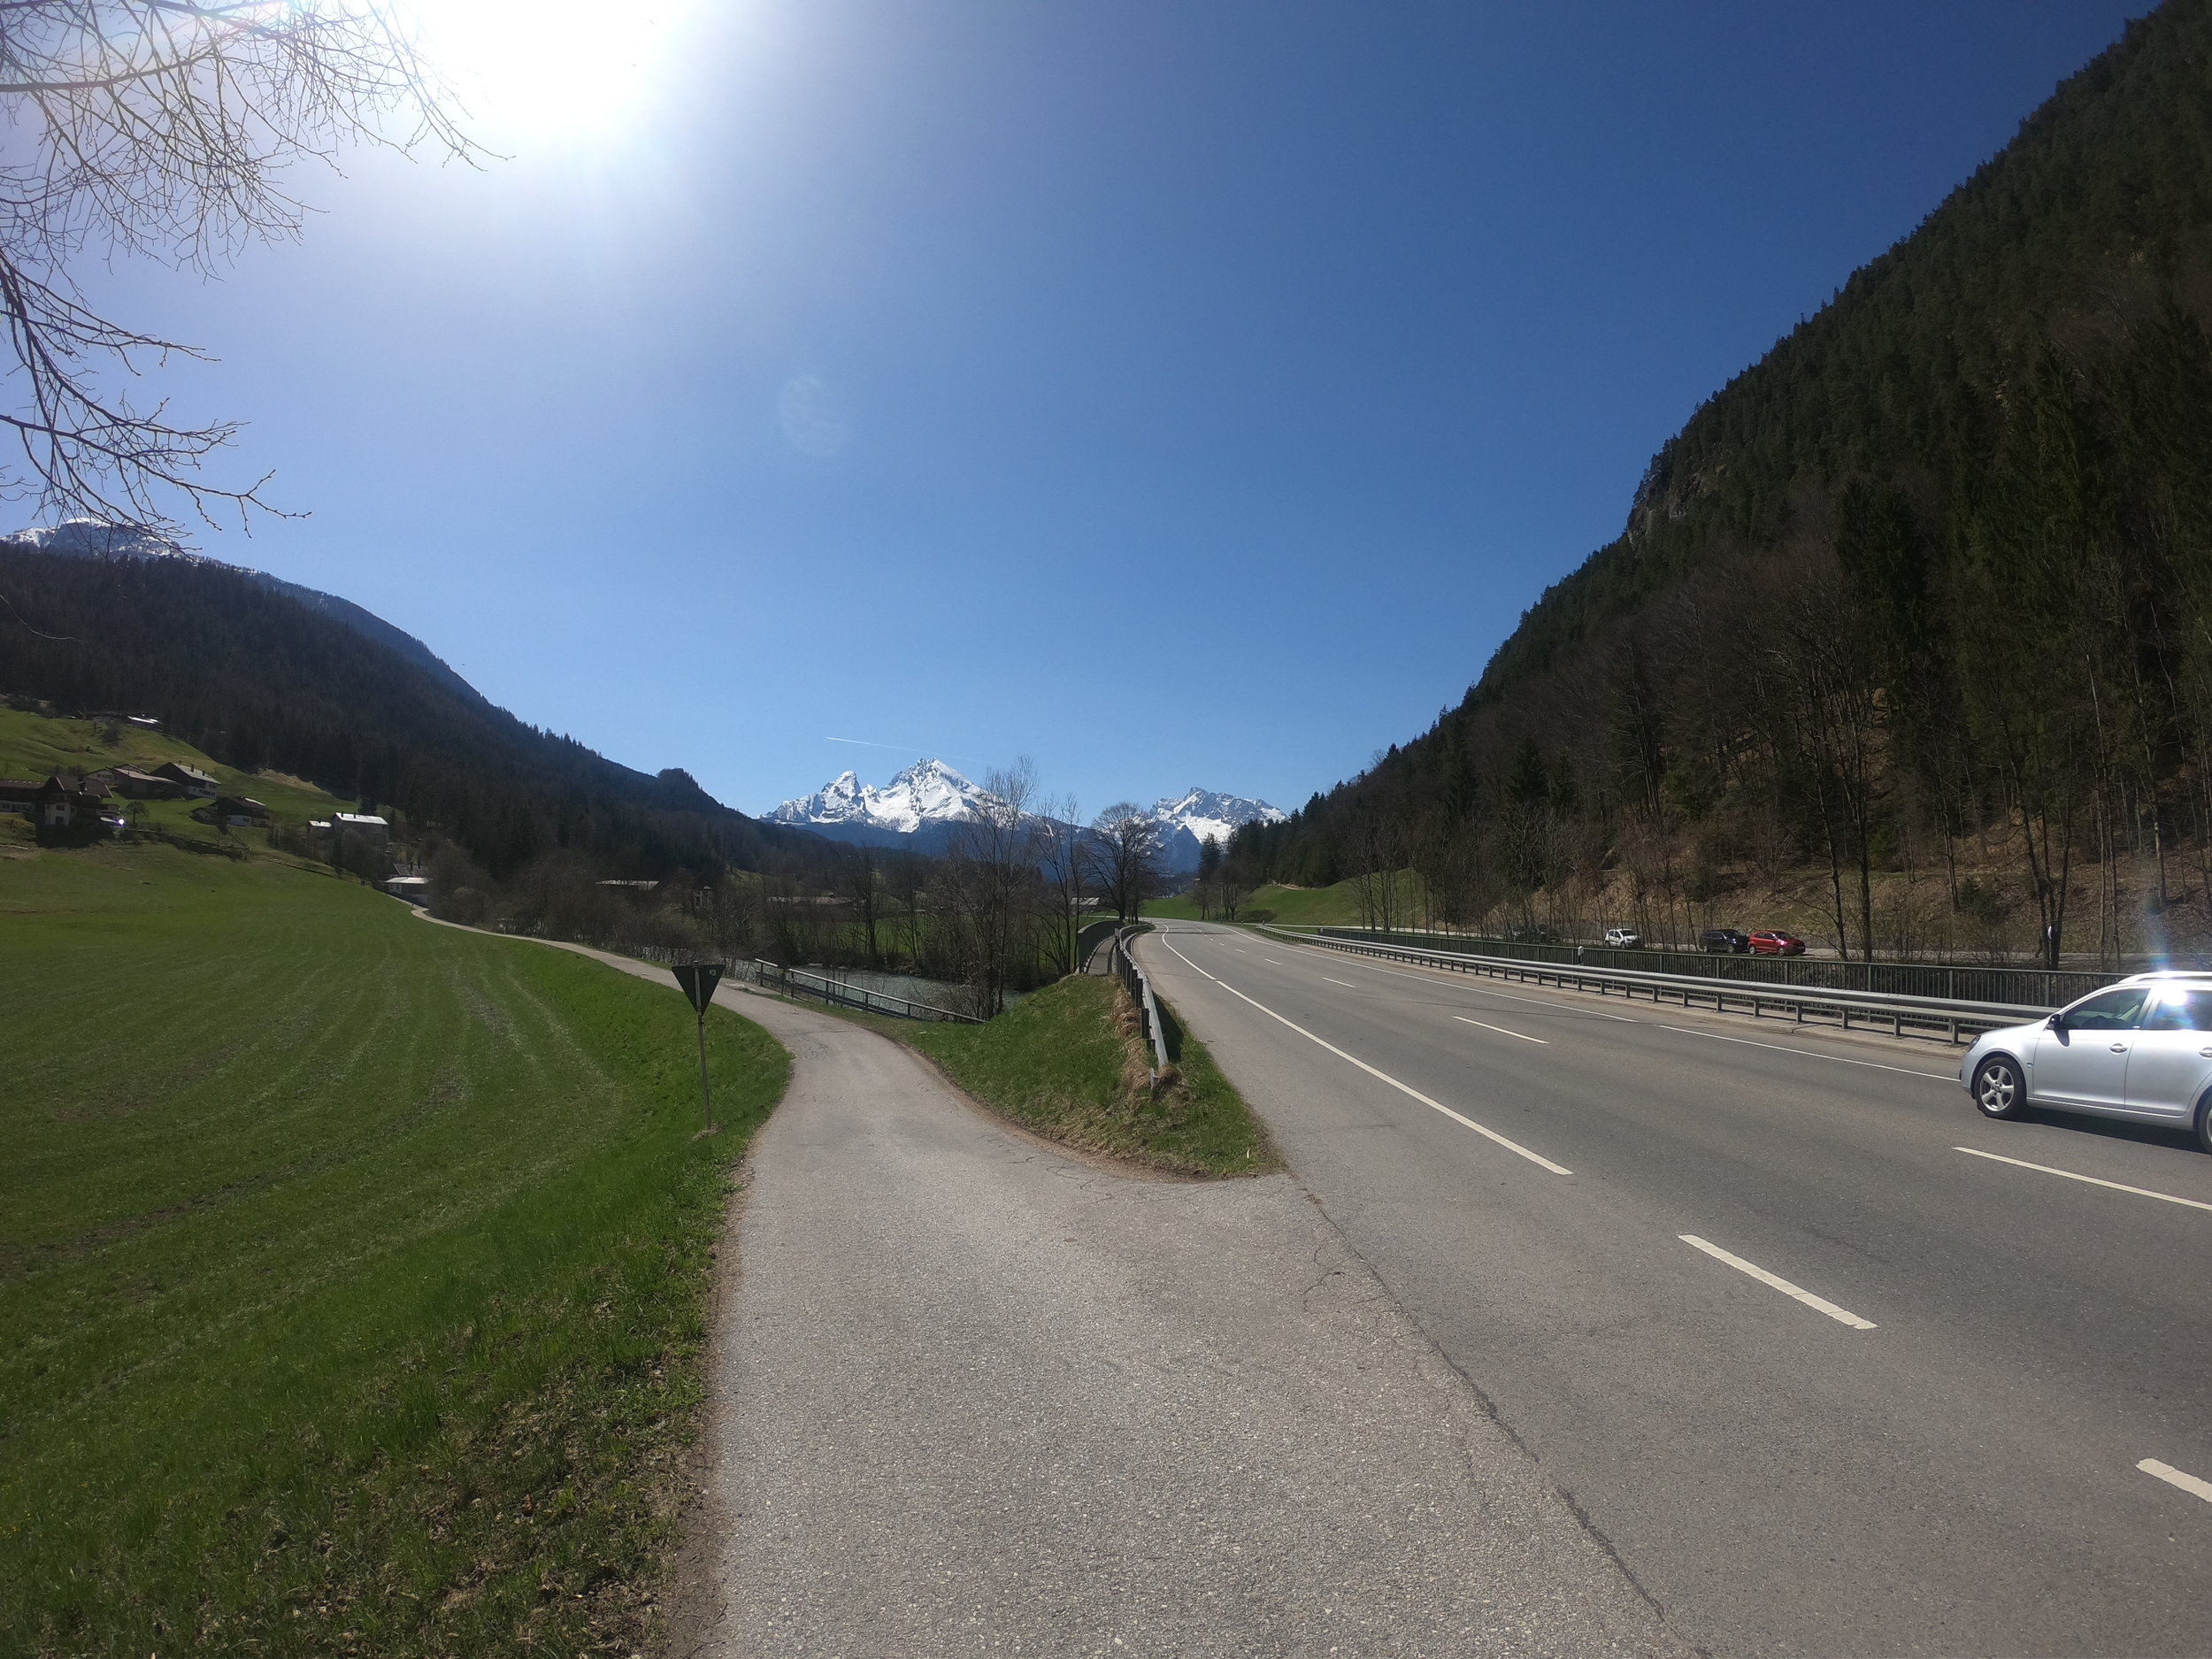 following the River Path down the Valley from Berchtesgaden.